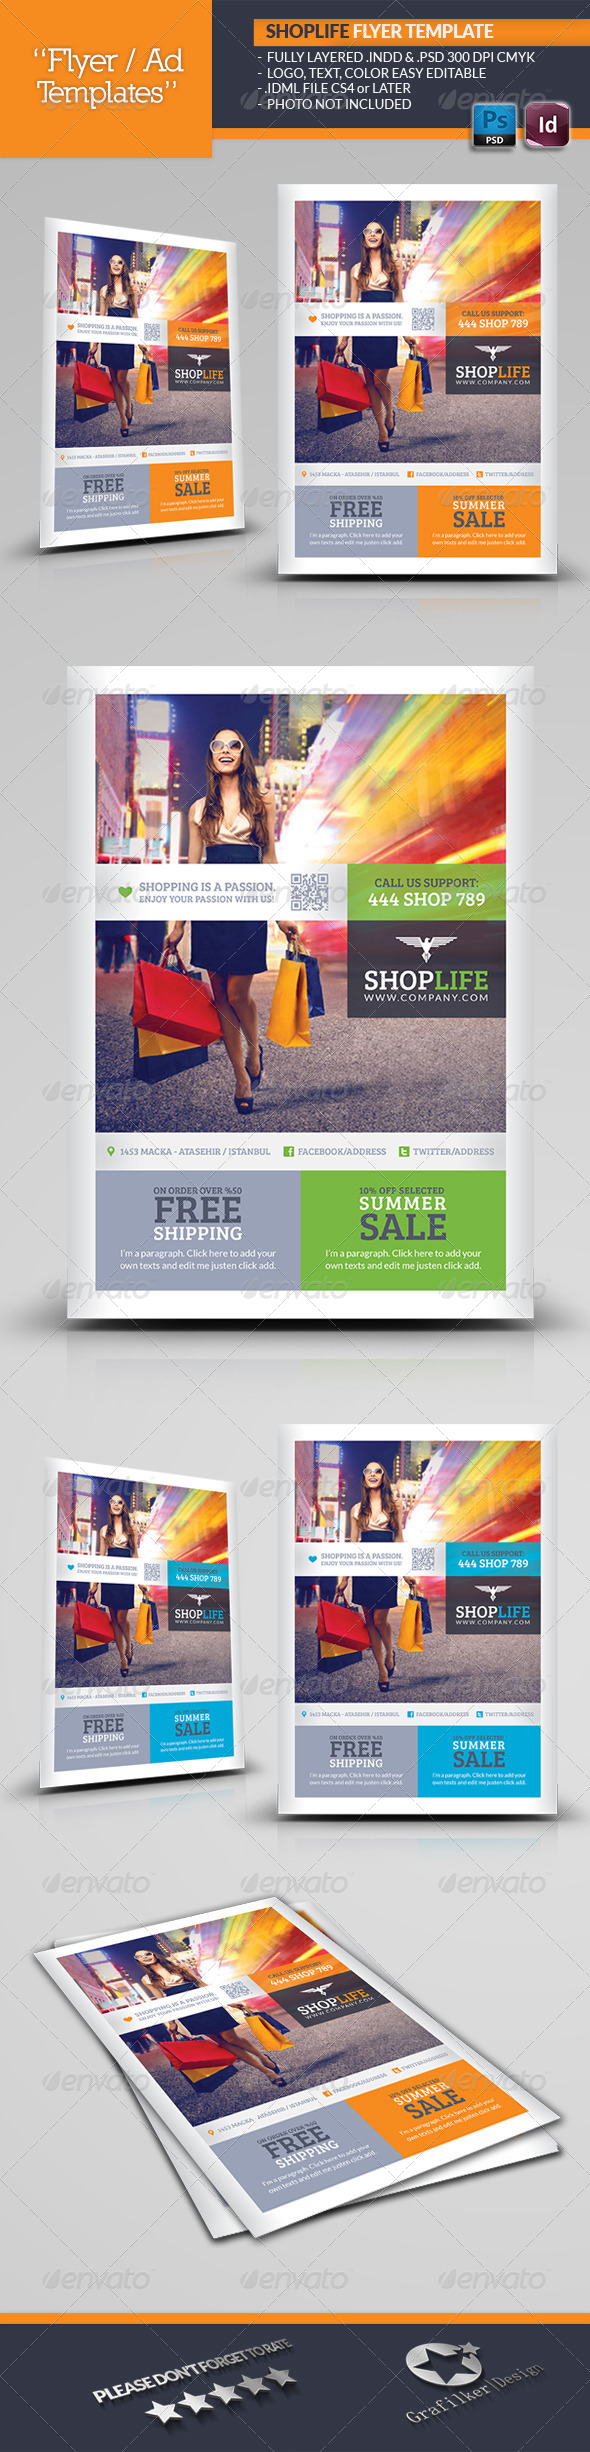 GraphicRiver Shop Life Flyer Template 5353001